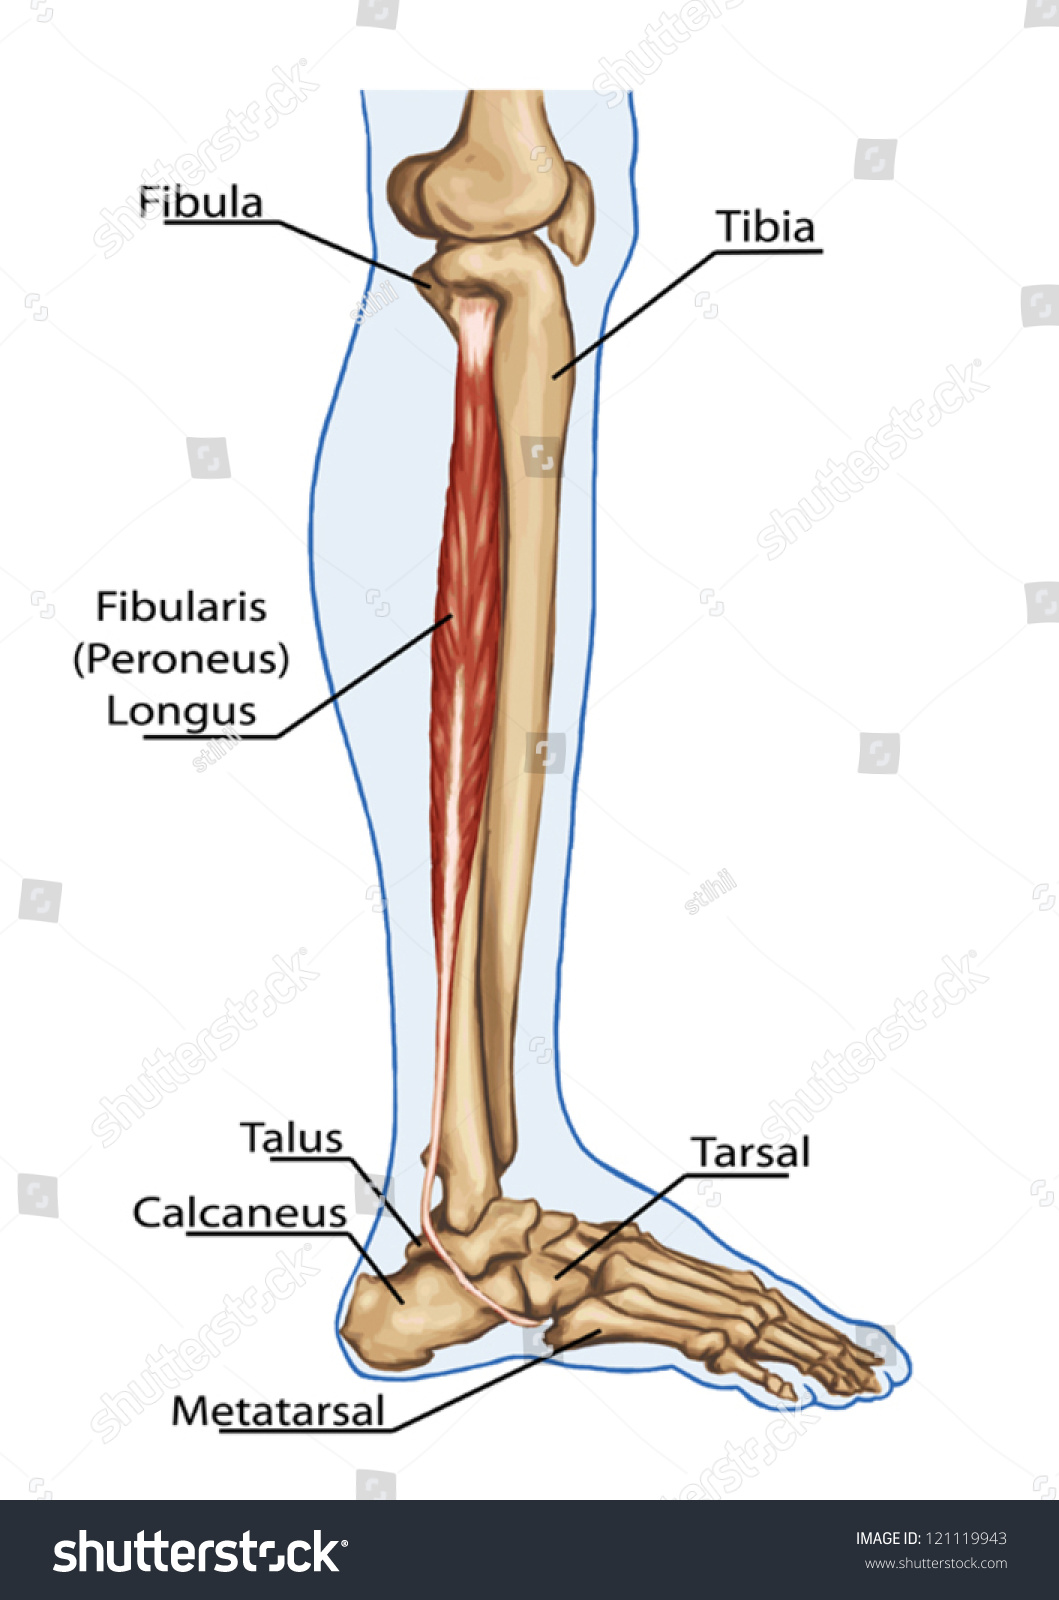 Fibularis Peroneus Longus Anatomy Leg Foot Stock Vector Royalty